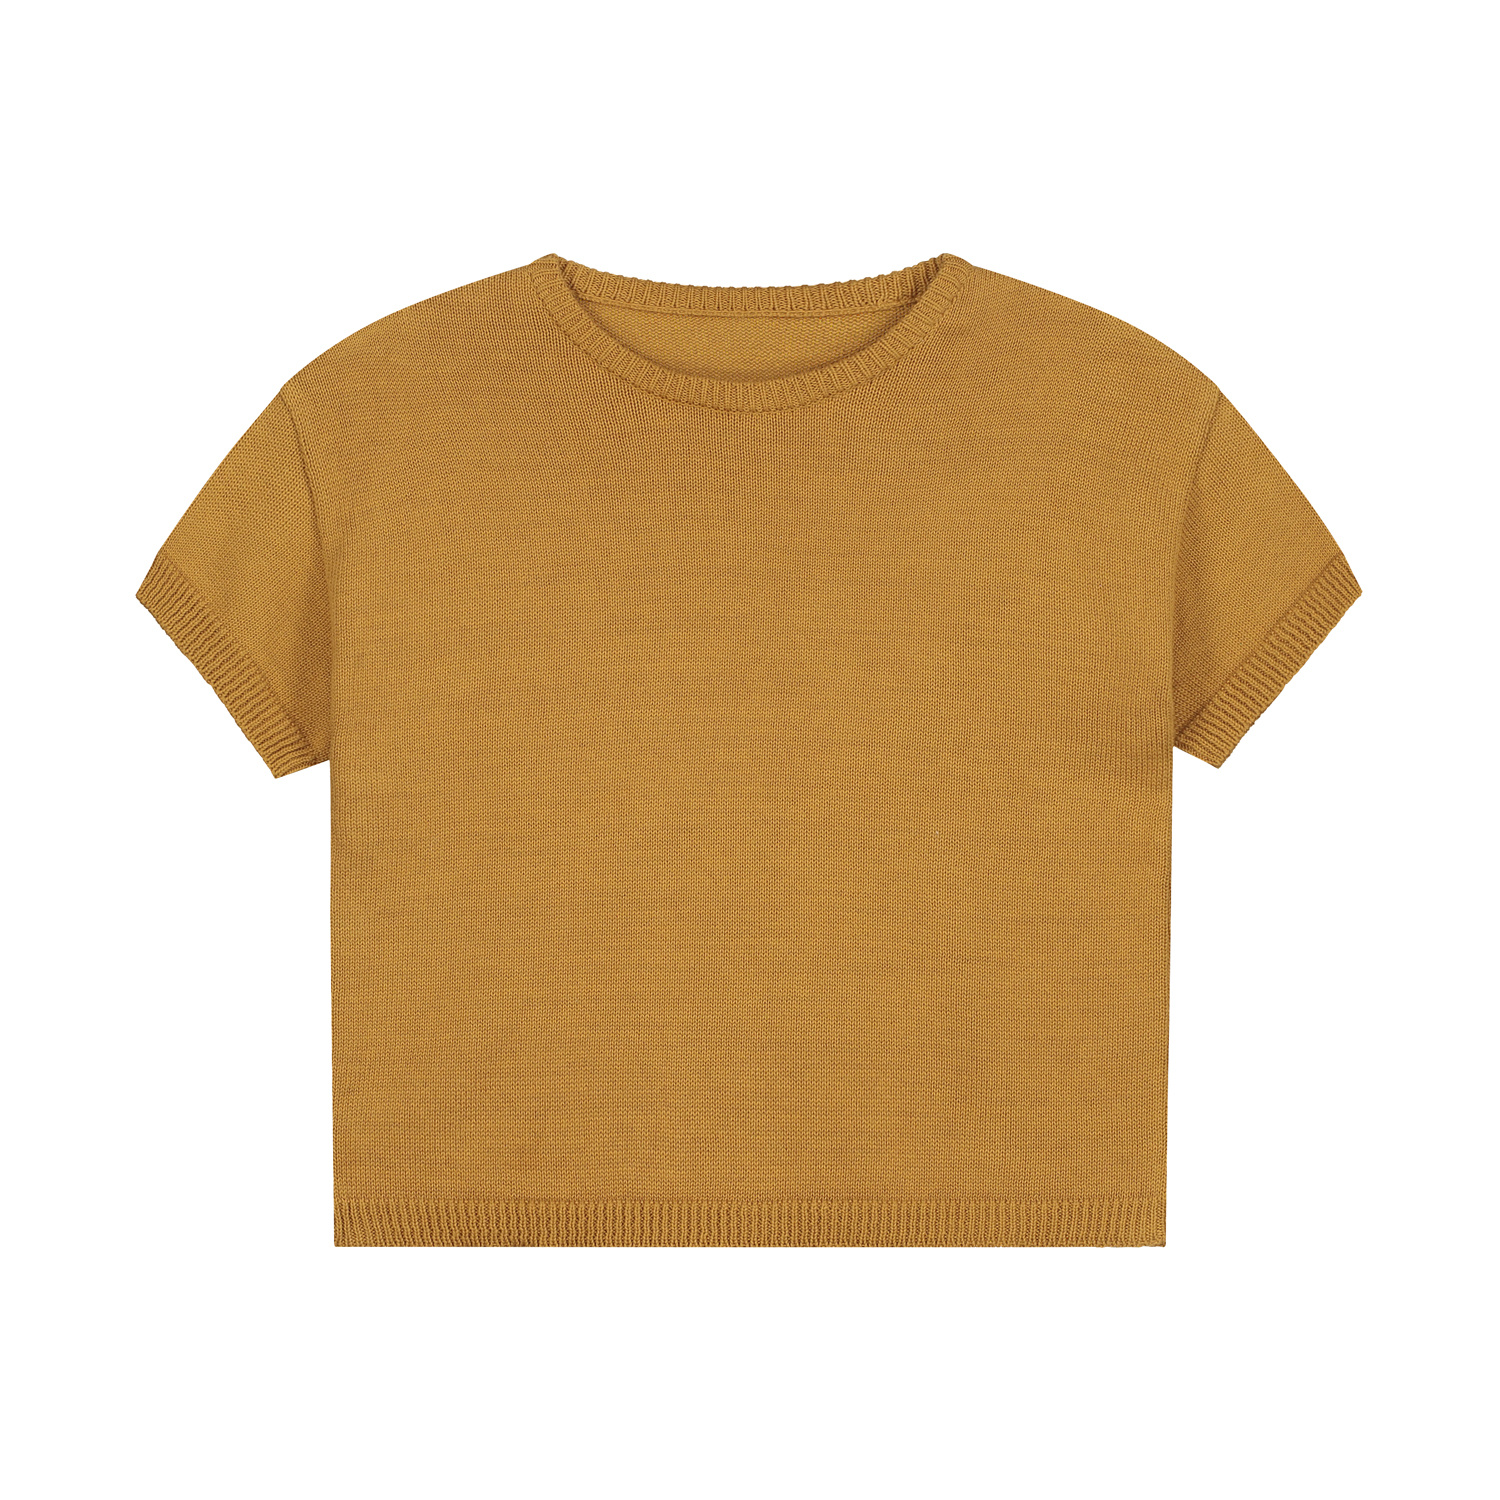 Summer knitted t-shirt sandstone-1